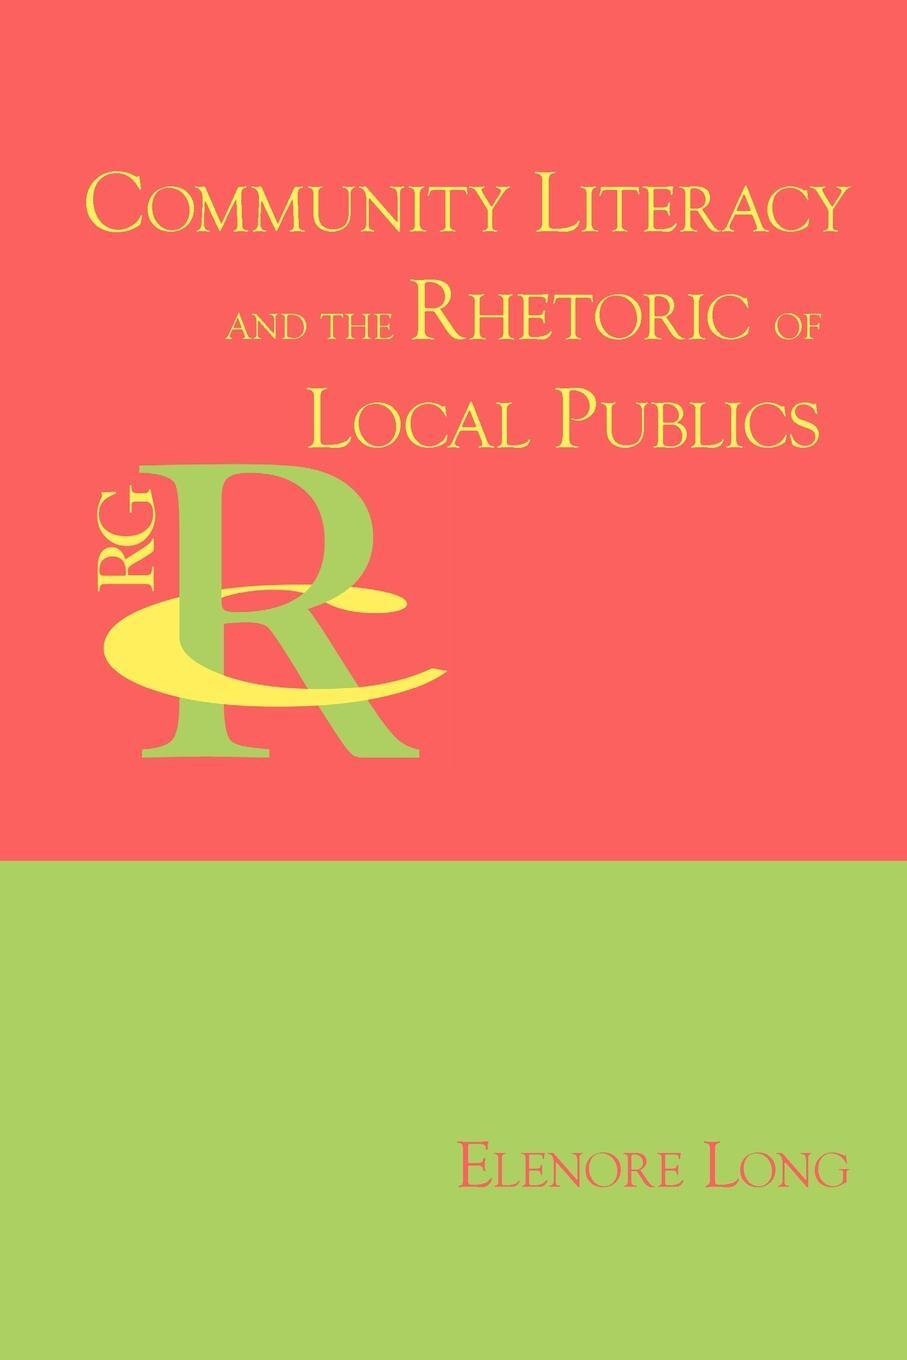 Community Literacy and the Rhetoric of Local Publics. Elenore Long